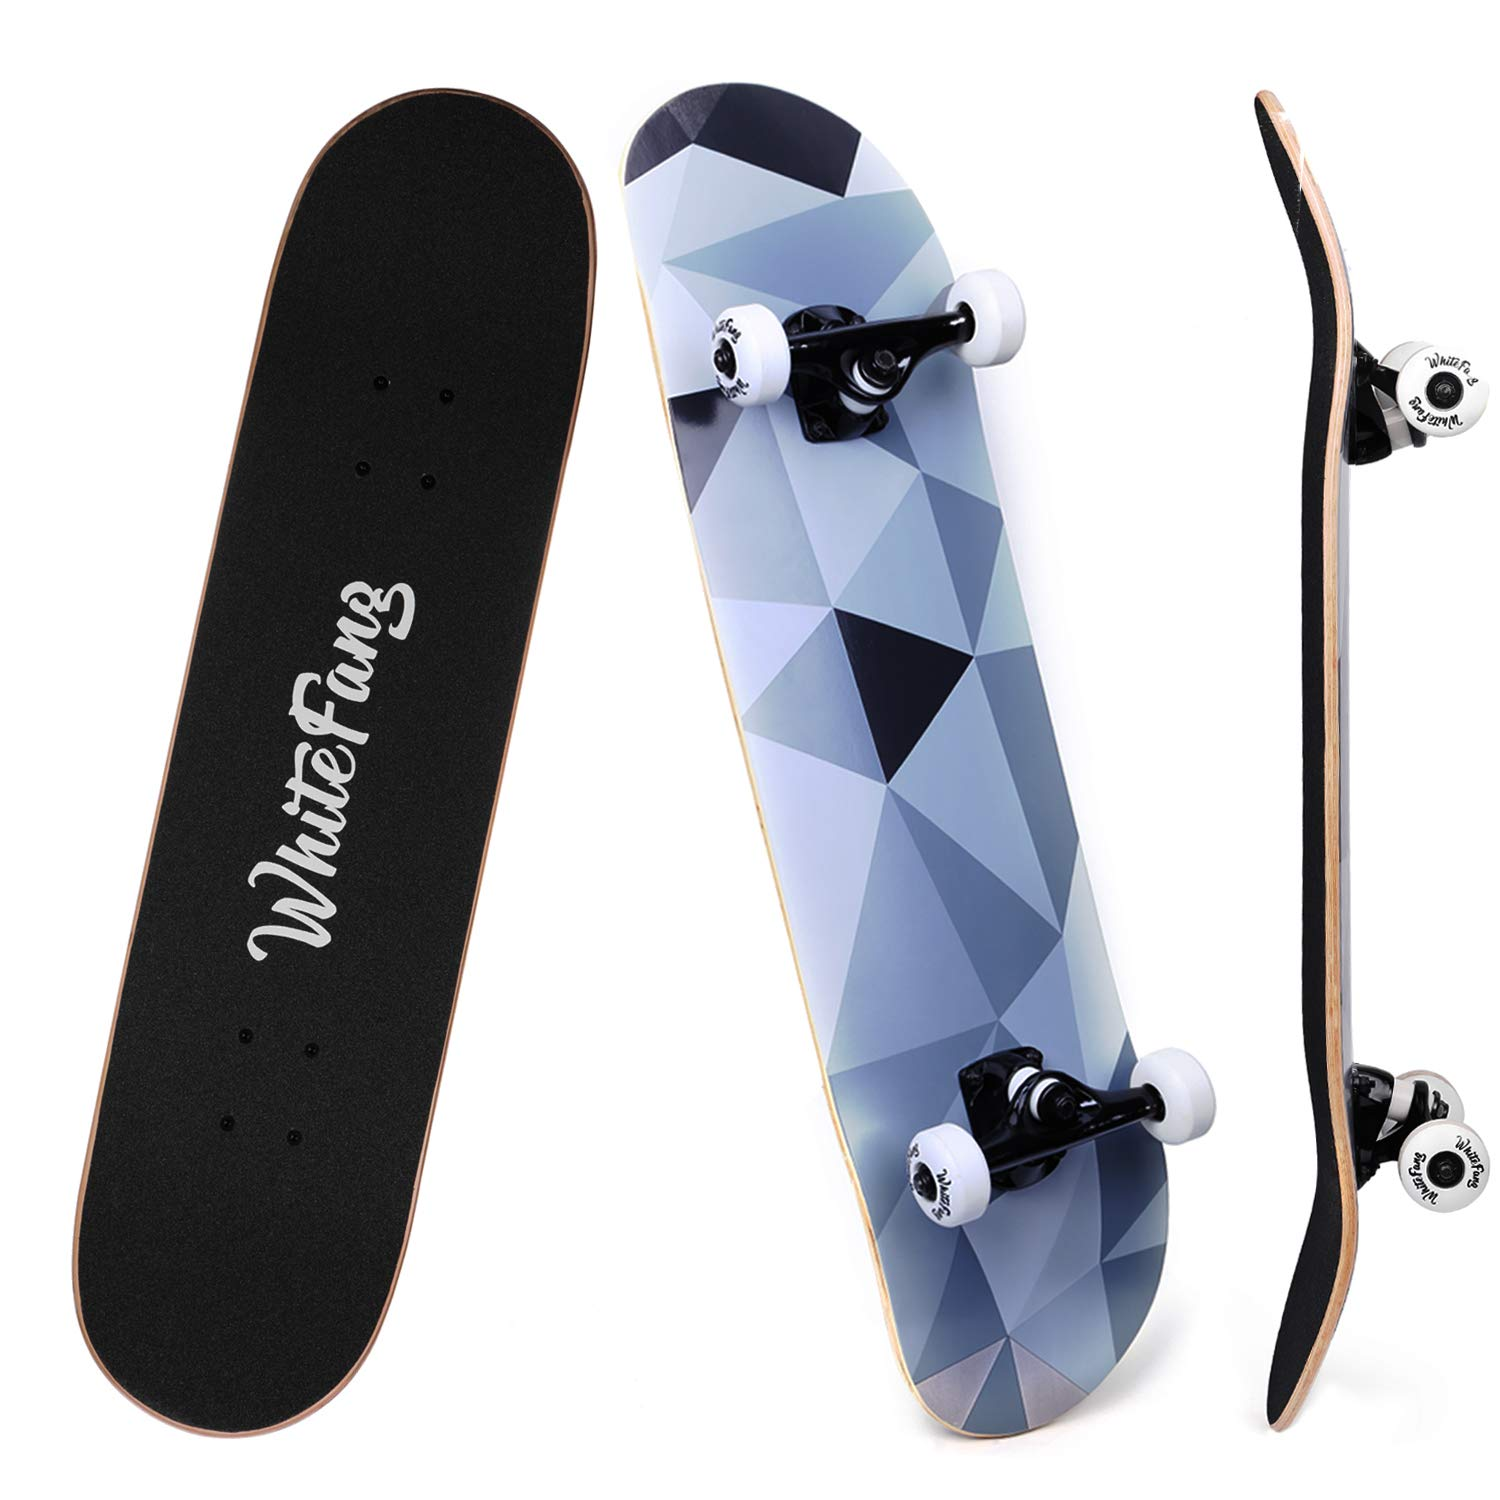 WhiteFang Skateboards for Beginners, Complete Skateboard 31 x 7.88, 7 Layer Canadian Maple Double Kick Concave Standard and Tricks Skateboards for Kids and Toddles (Diamond) by WhiteFang